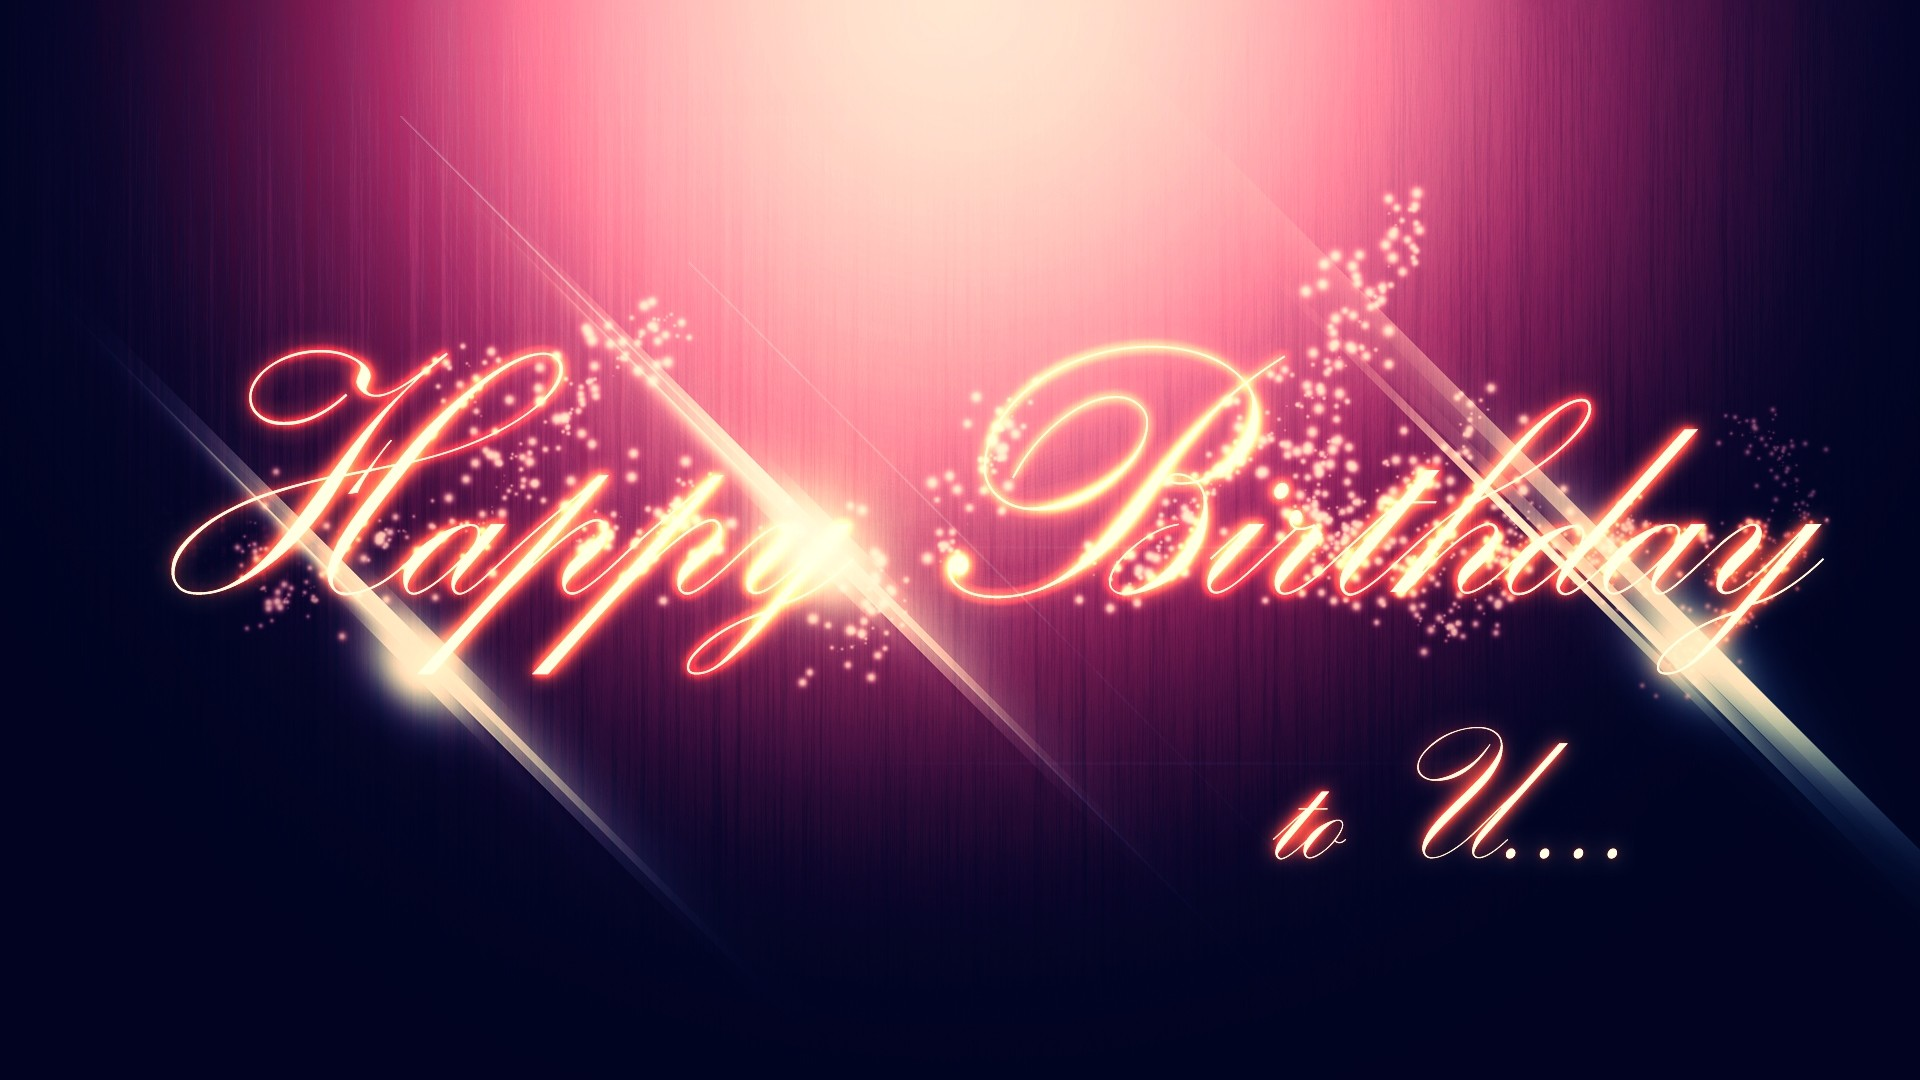 happy-birthday-wishes-desktop-wallpaper.jpg